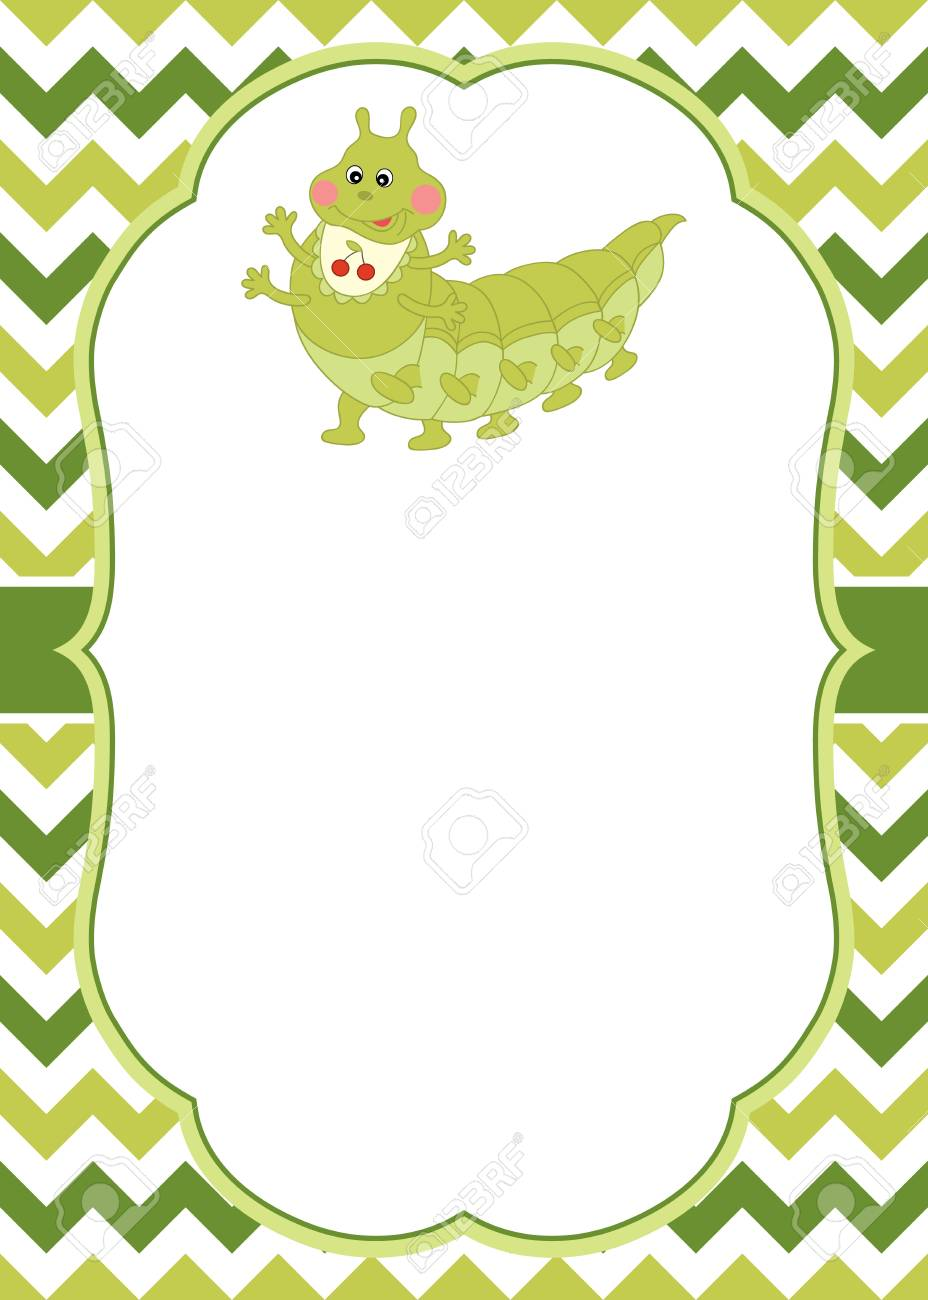 vector card template with a cute cartoon caterpillar on chevron